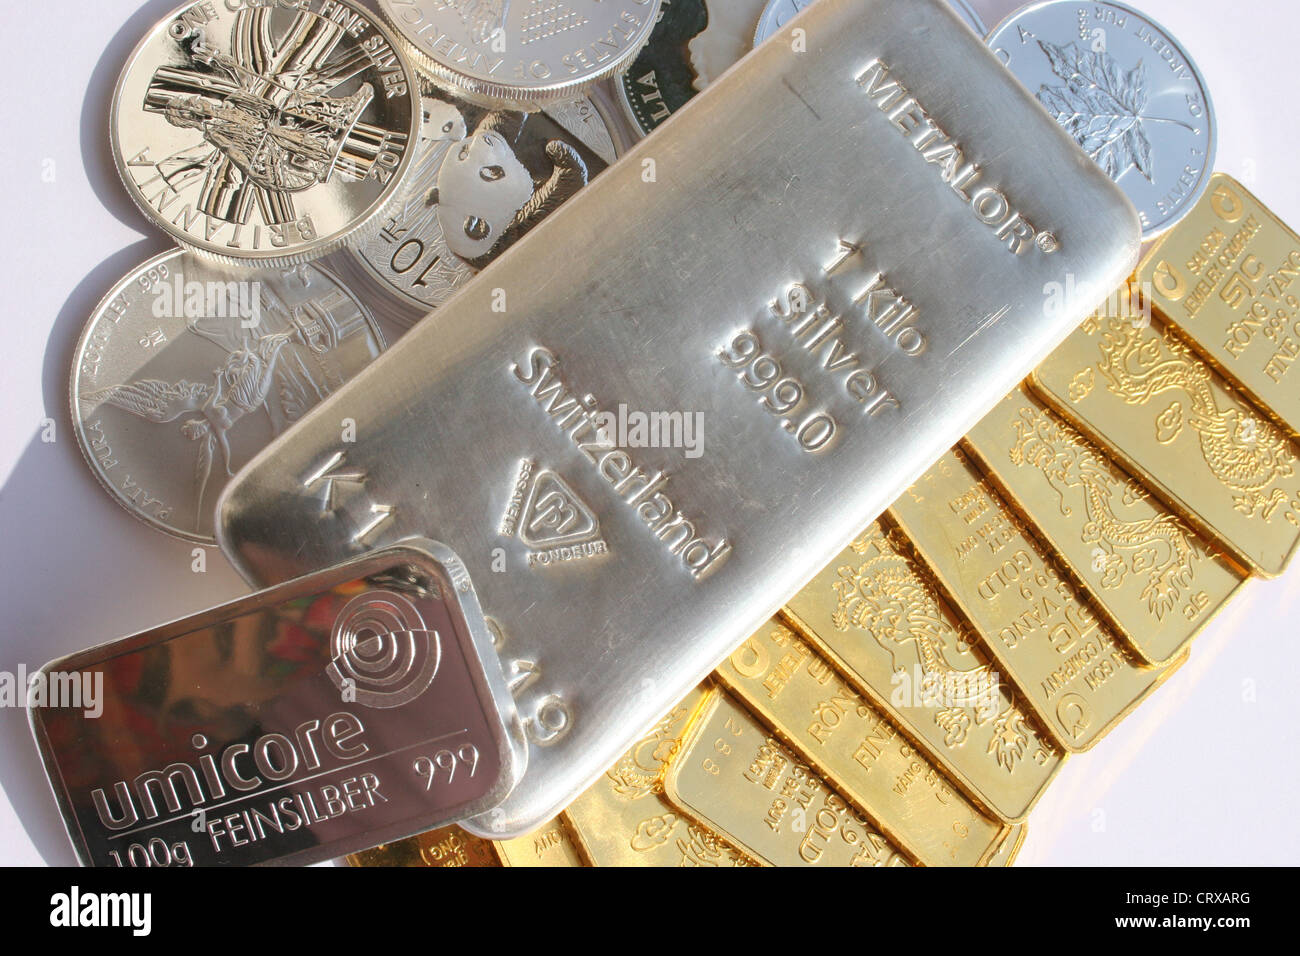 Collection of gold and silver bars and coins - Stock Image